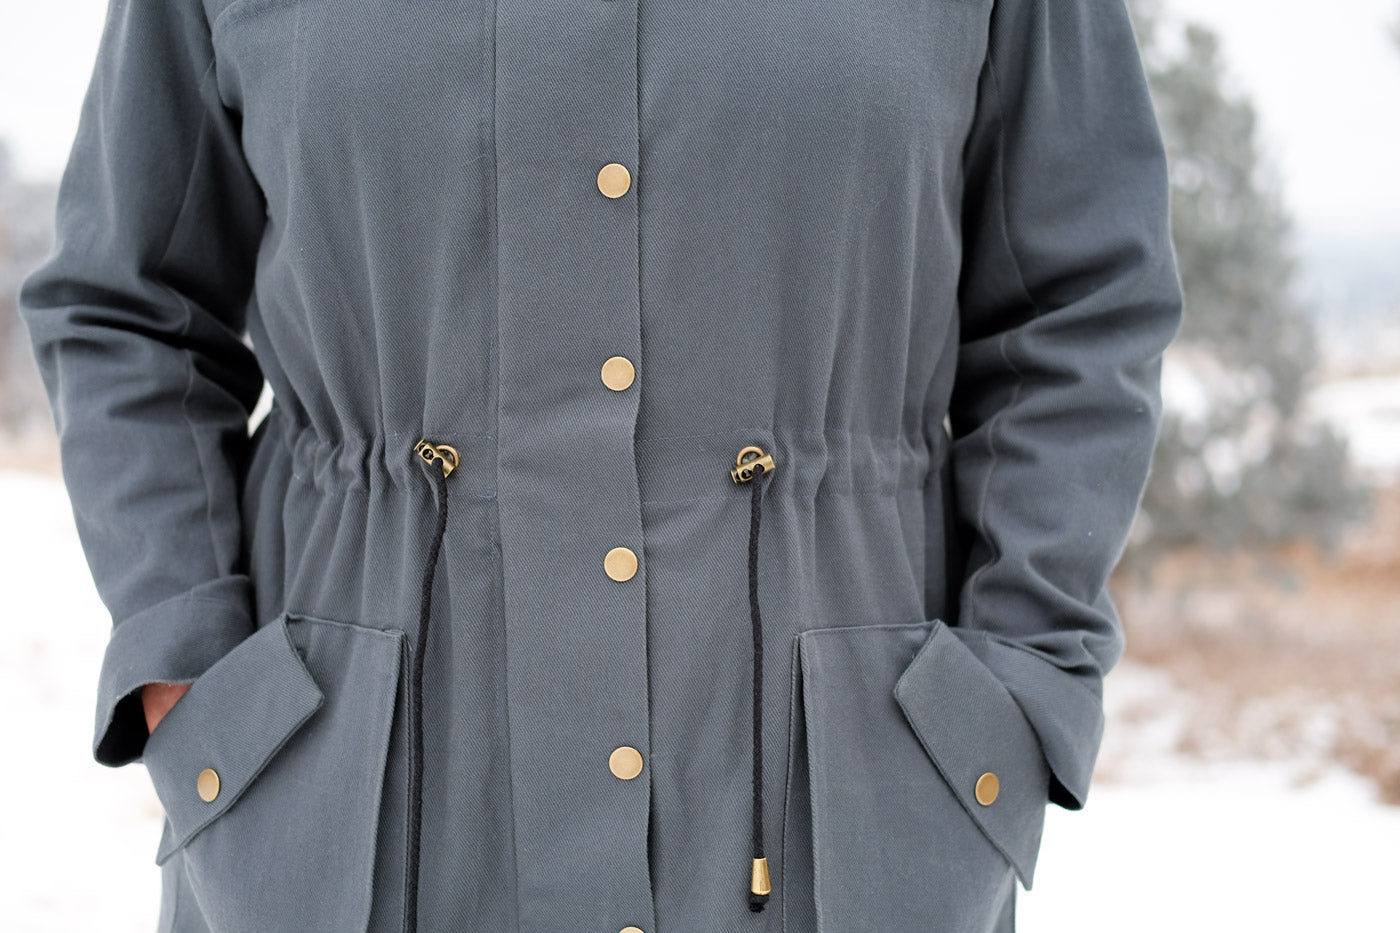 Detail of the Kelly Anorak Hardware